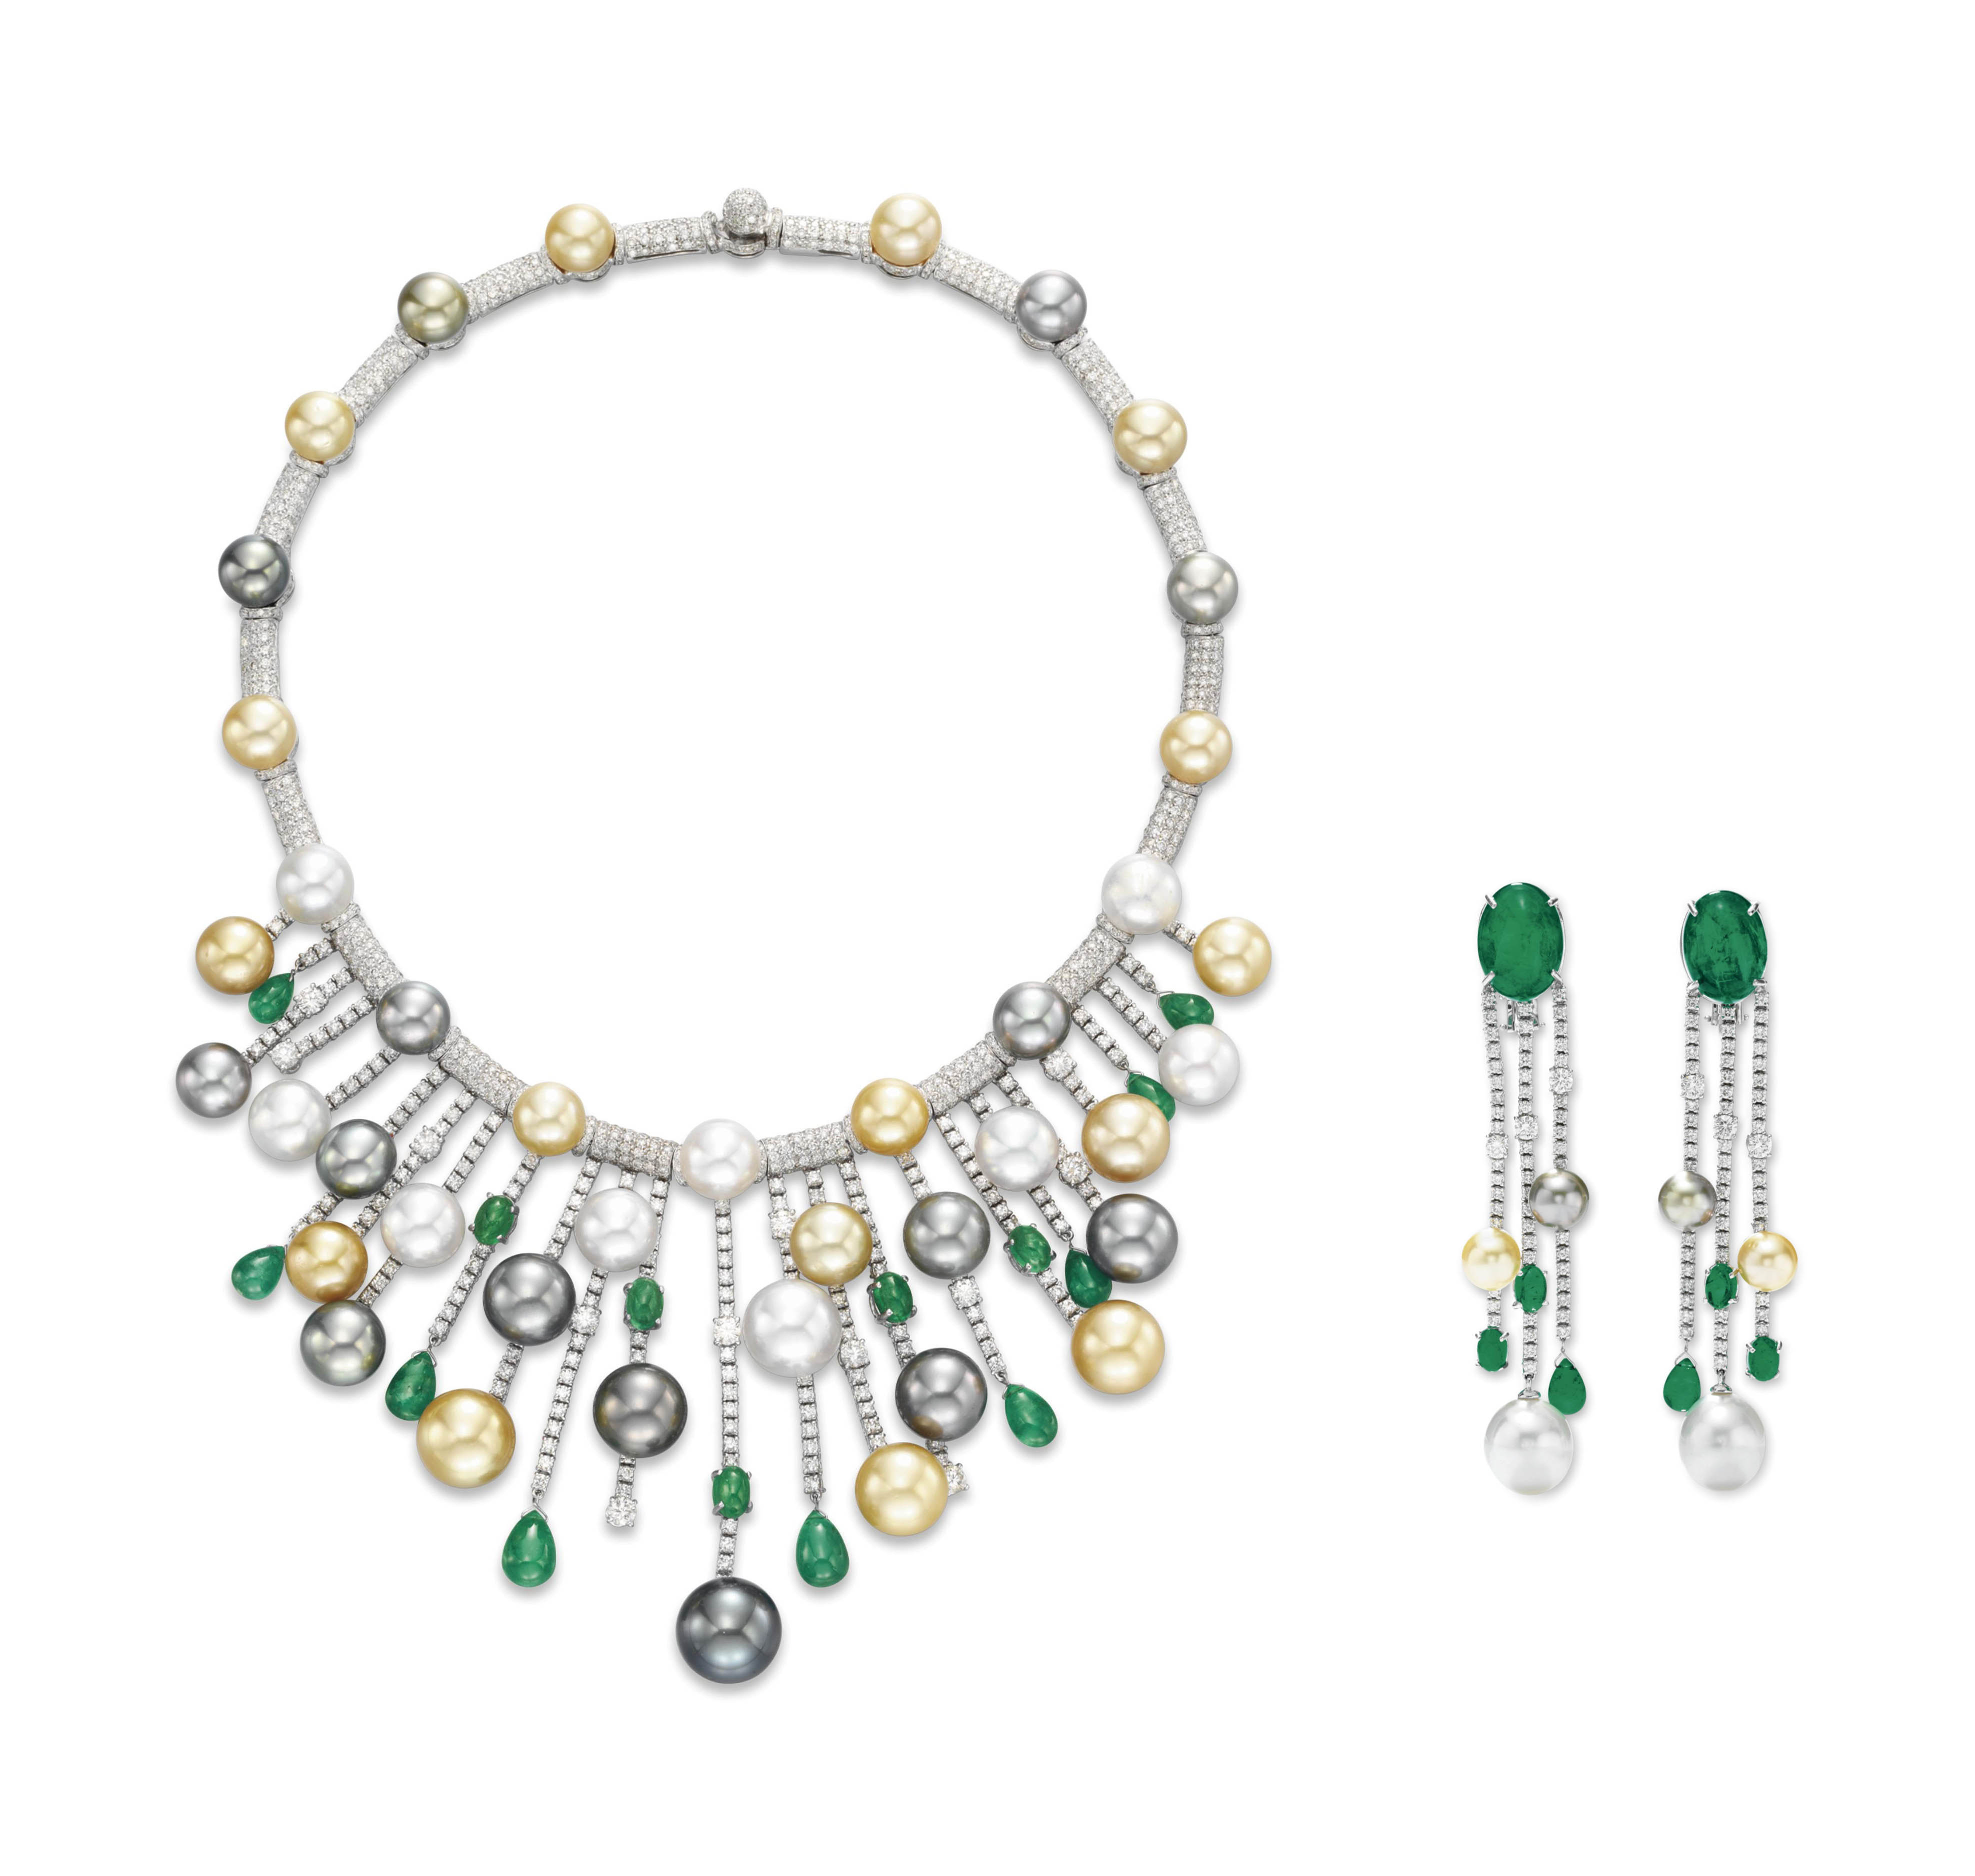 A SET OF DIAMOND, EMERALD AND CULTURED PEARL JEWELRY, BY HOUSE OF TAYLOR